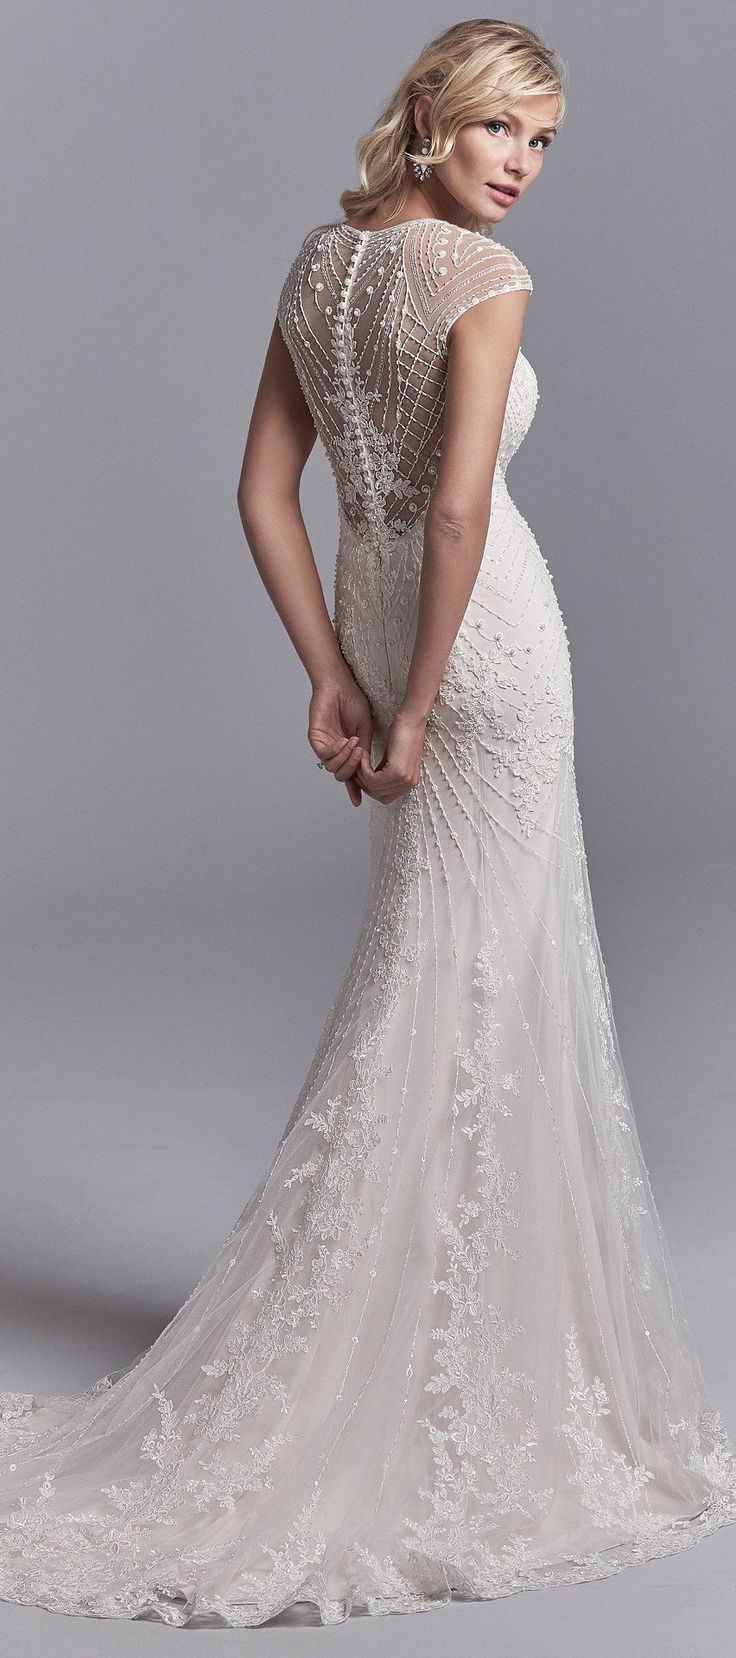 Grady features unique geometric lace motifs and luxe lining. See more from the Khloe Collection by Sottero and Midgley on the website!